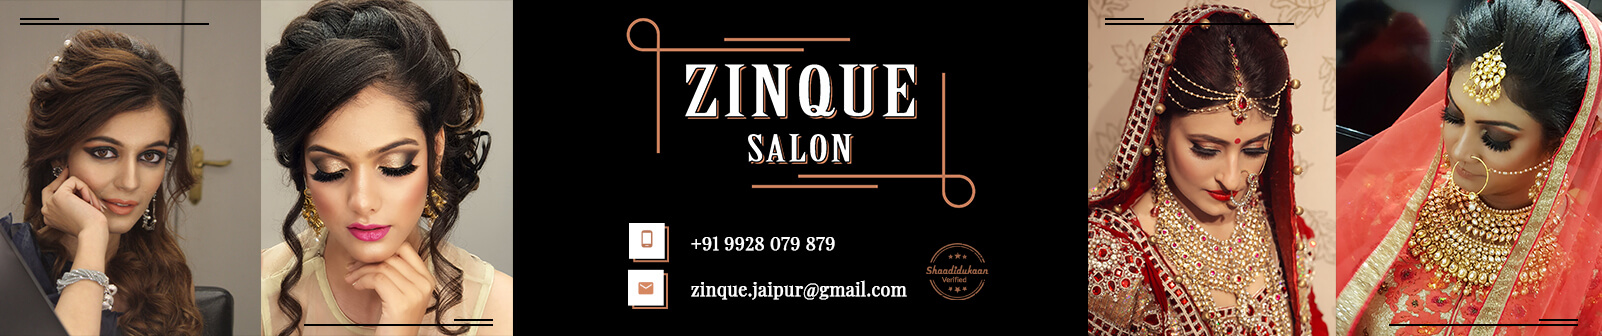 Zinque Salon